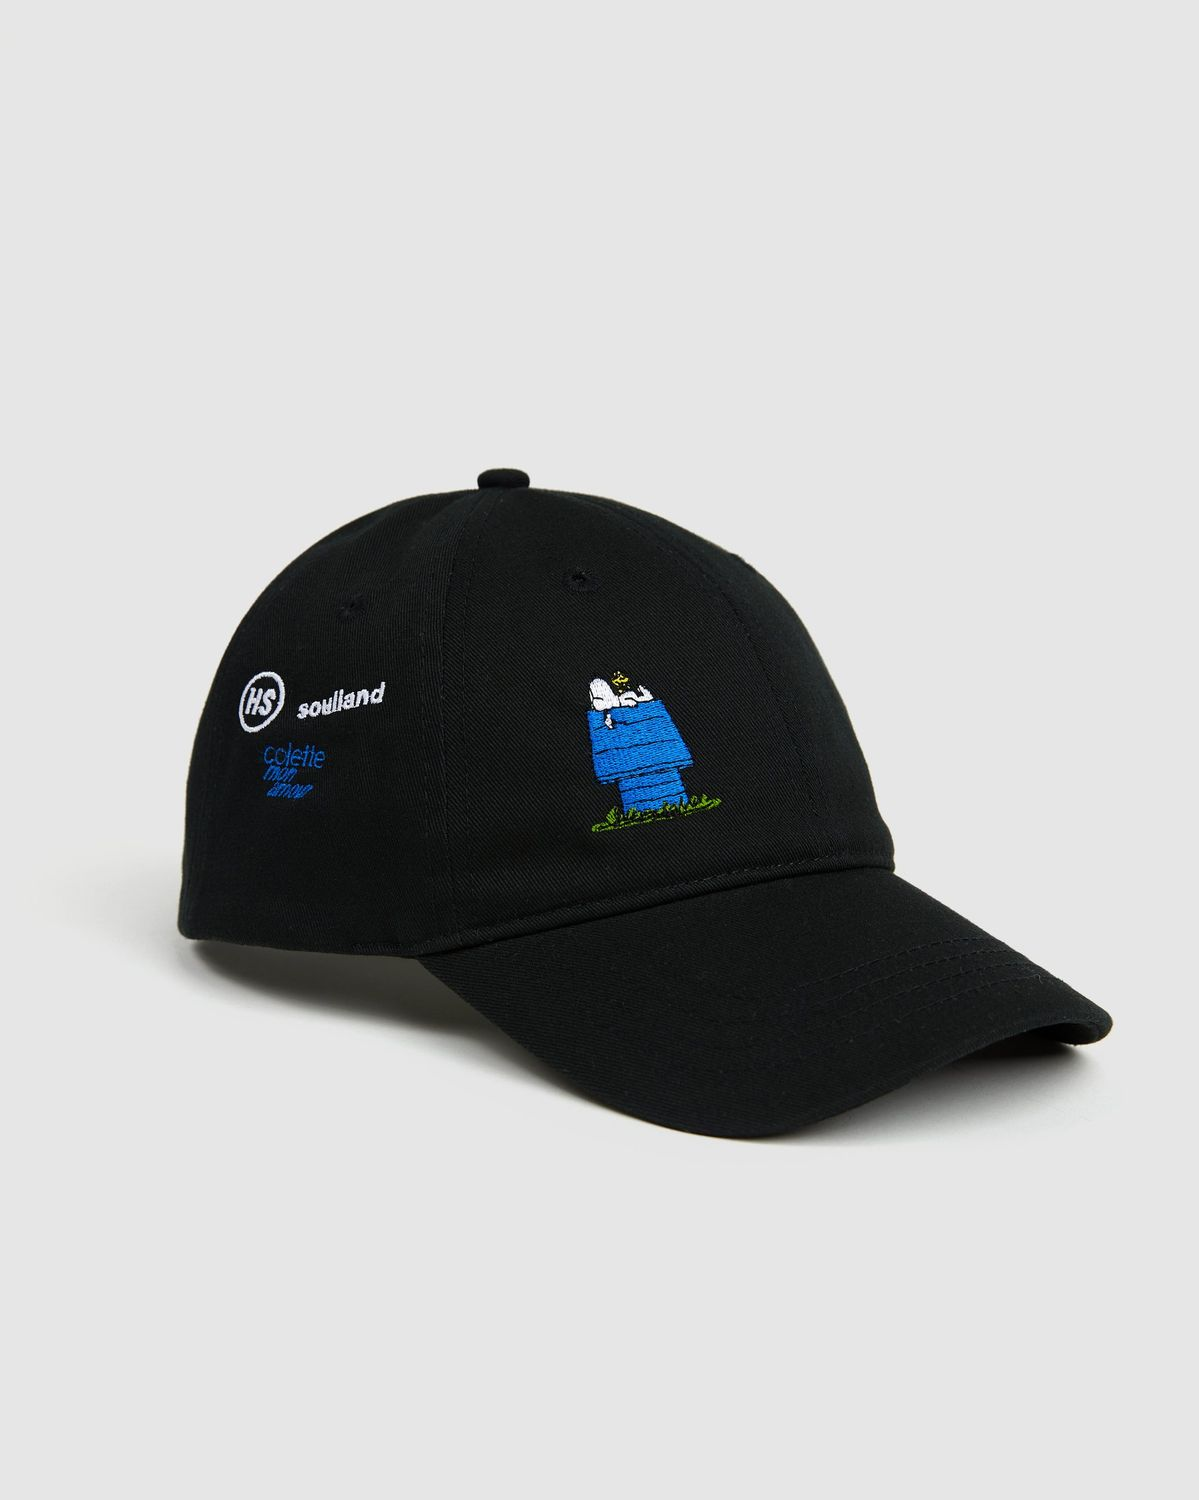 Colette Mon Amour x Soulland -  Snoopy Bed Black Baseball Cap - Image 1